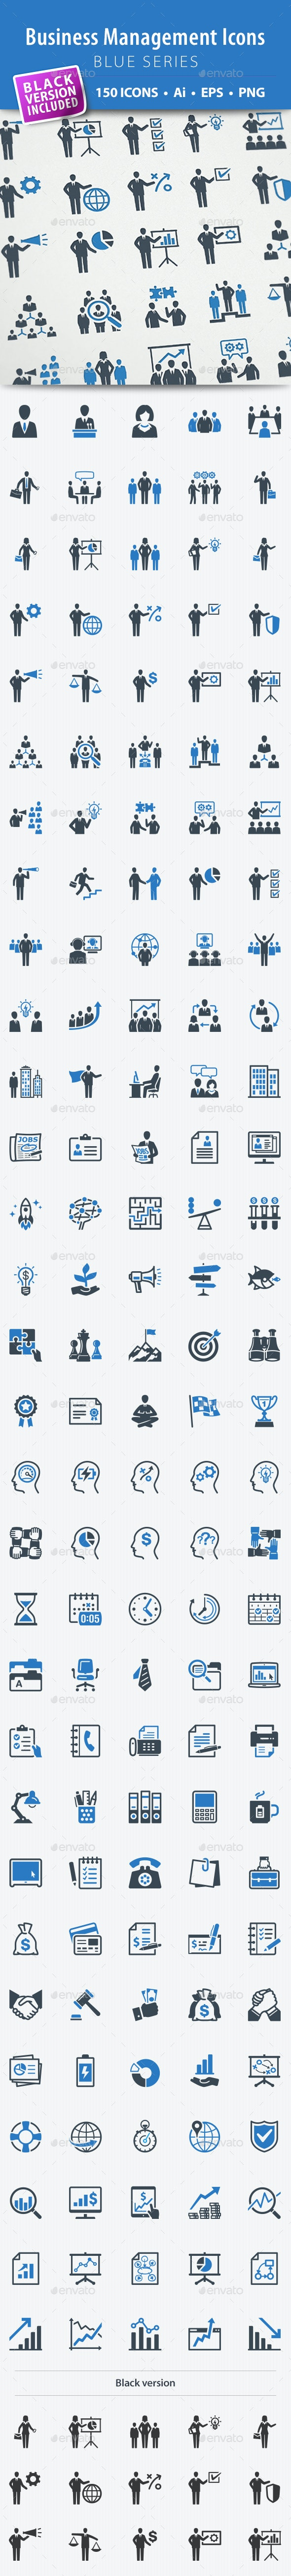 Business Management Icons - Blue Series - Business Icons